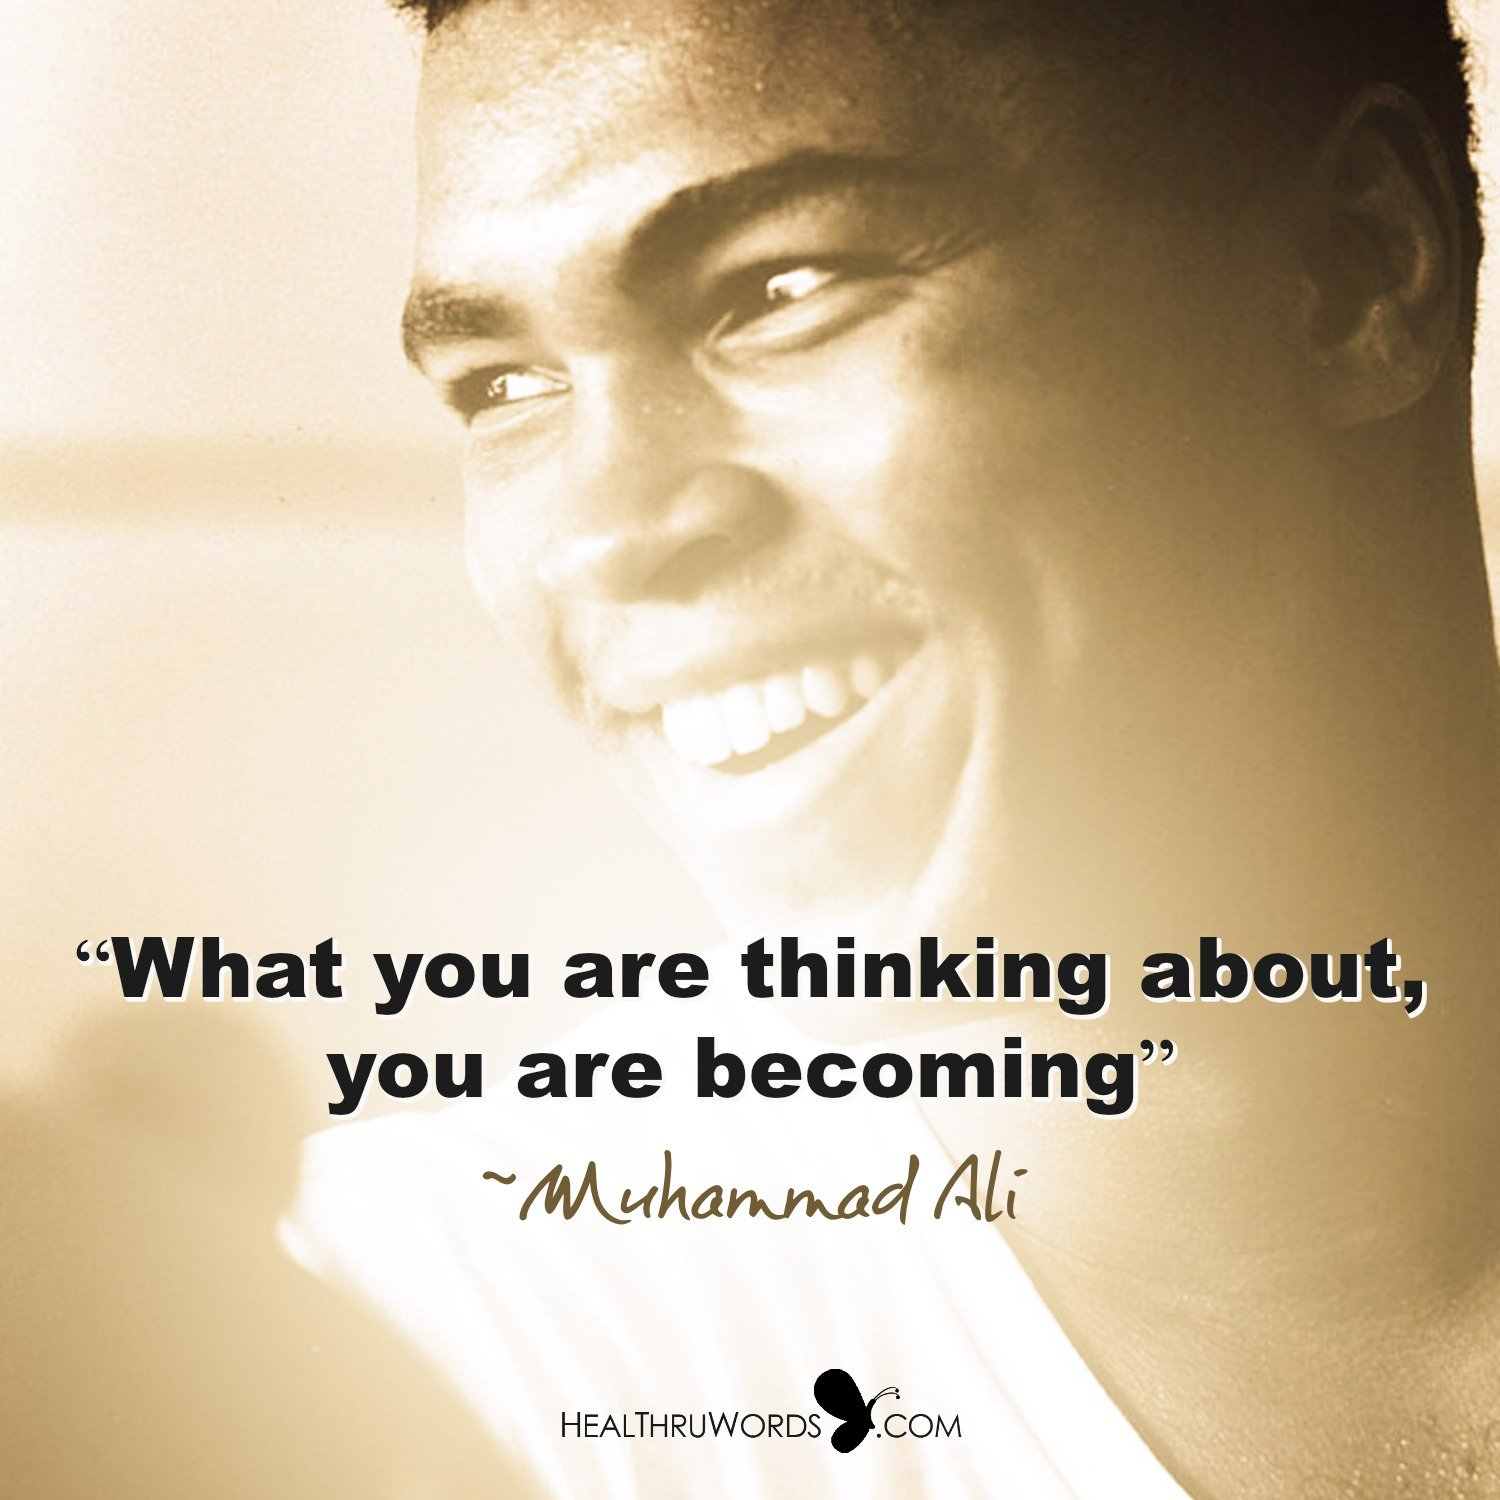 What you are thinking about, you are becoming - Muhammad Ali